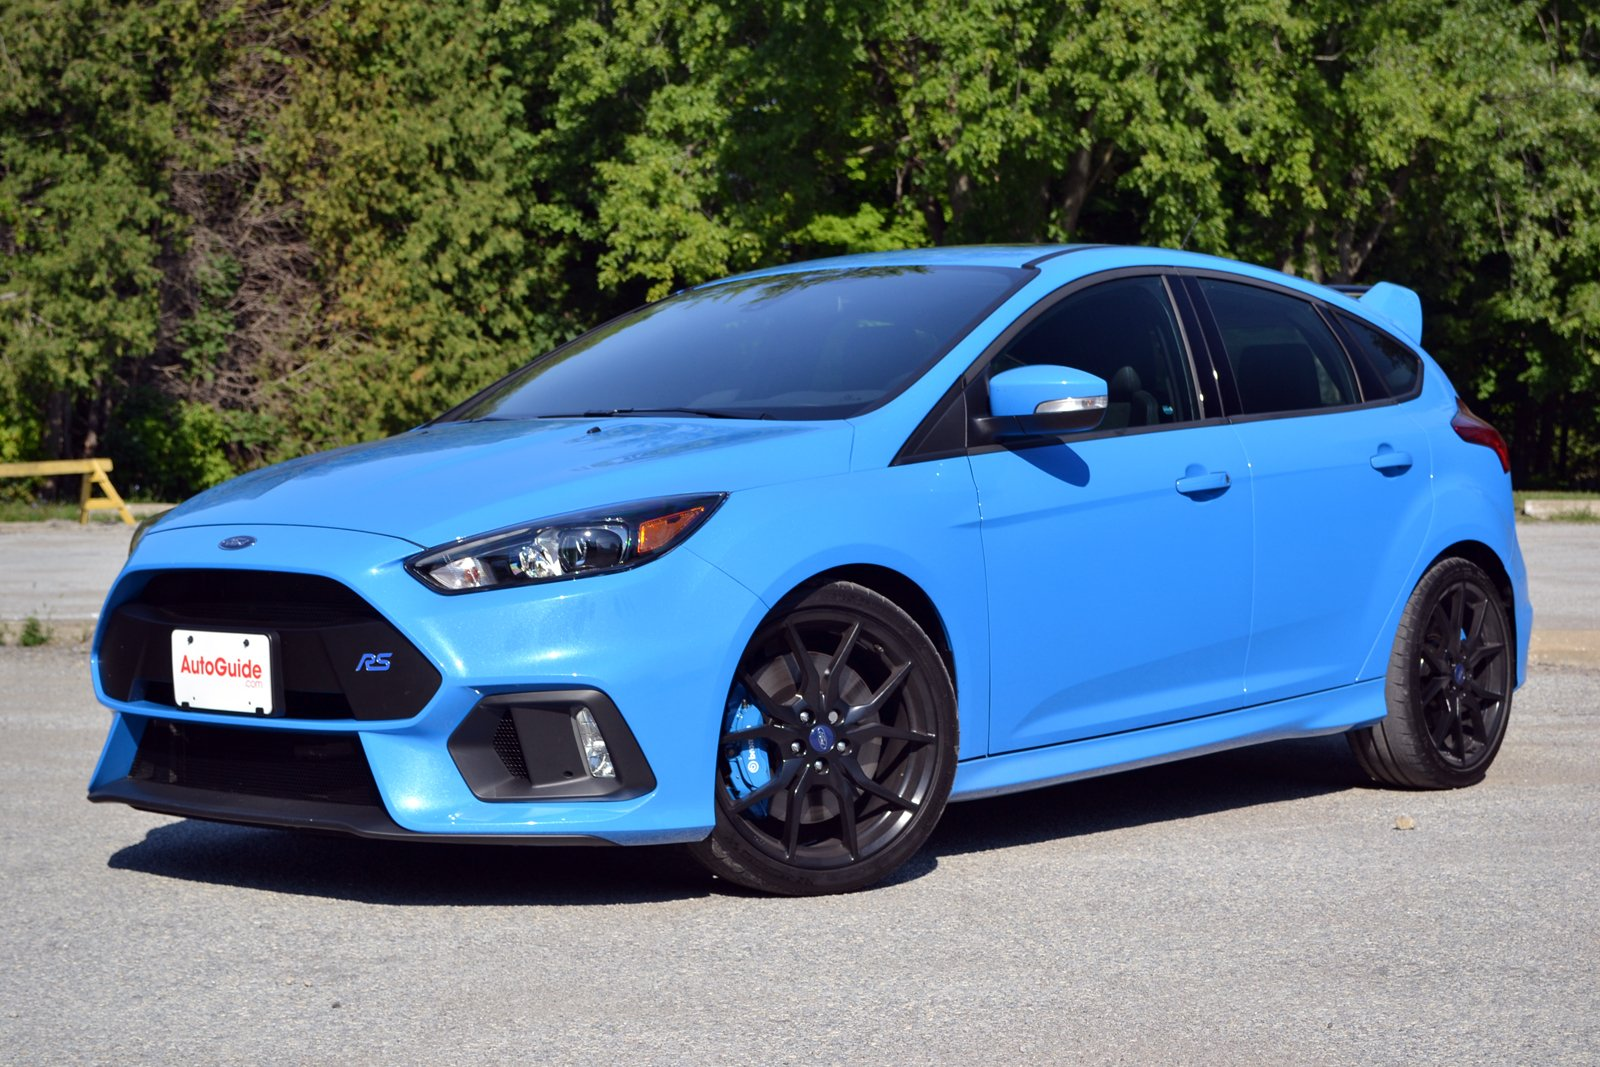 Ford focus rs looks bad and blue in new york city ny daily news.